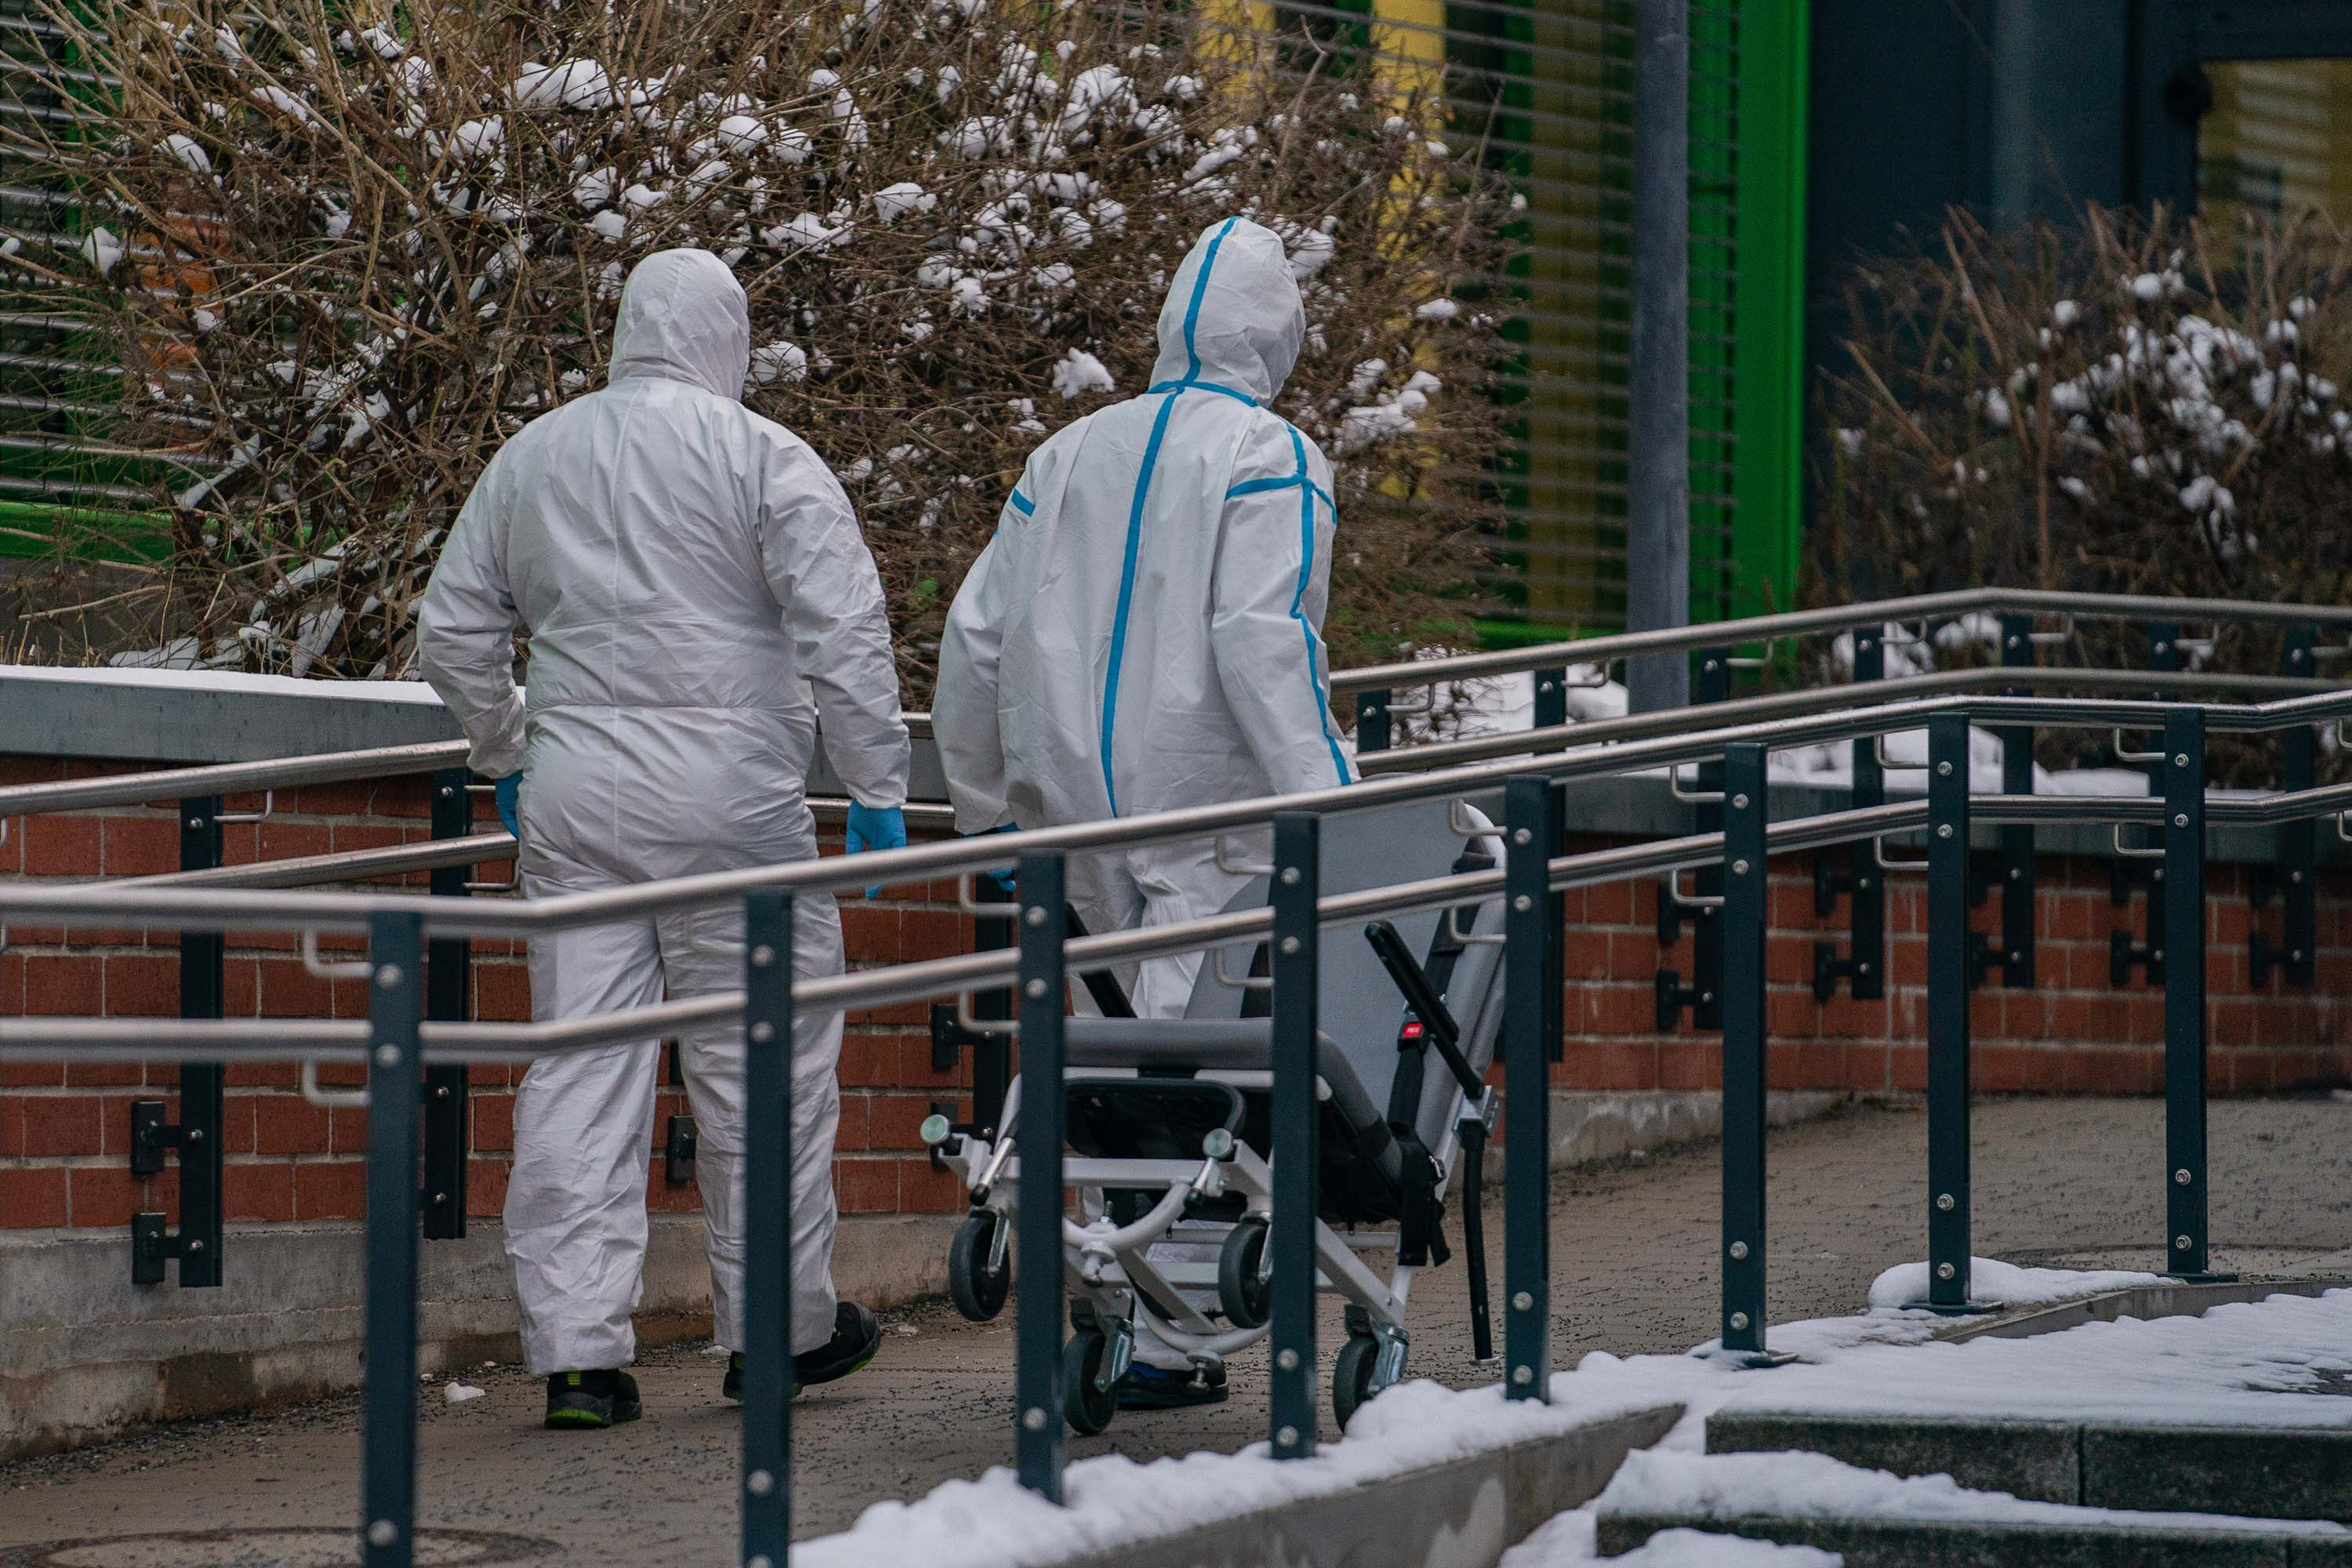 Medical staff walk towards the main entrance of a hospital in Bayreuth, Germany, on January 26.